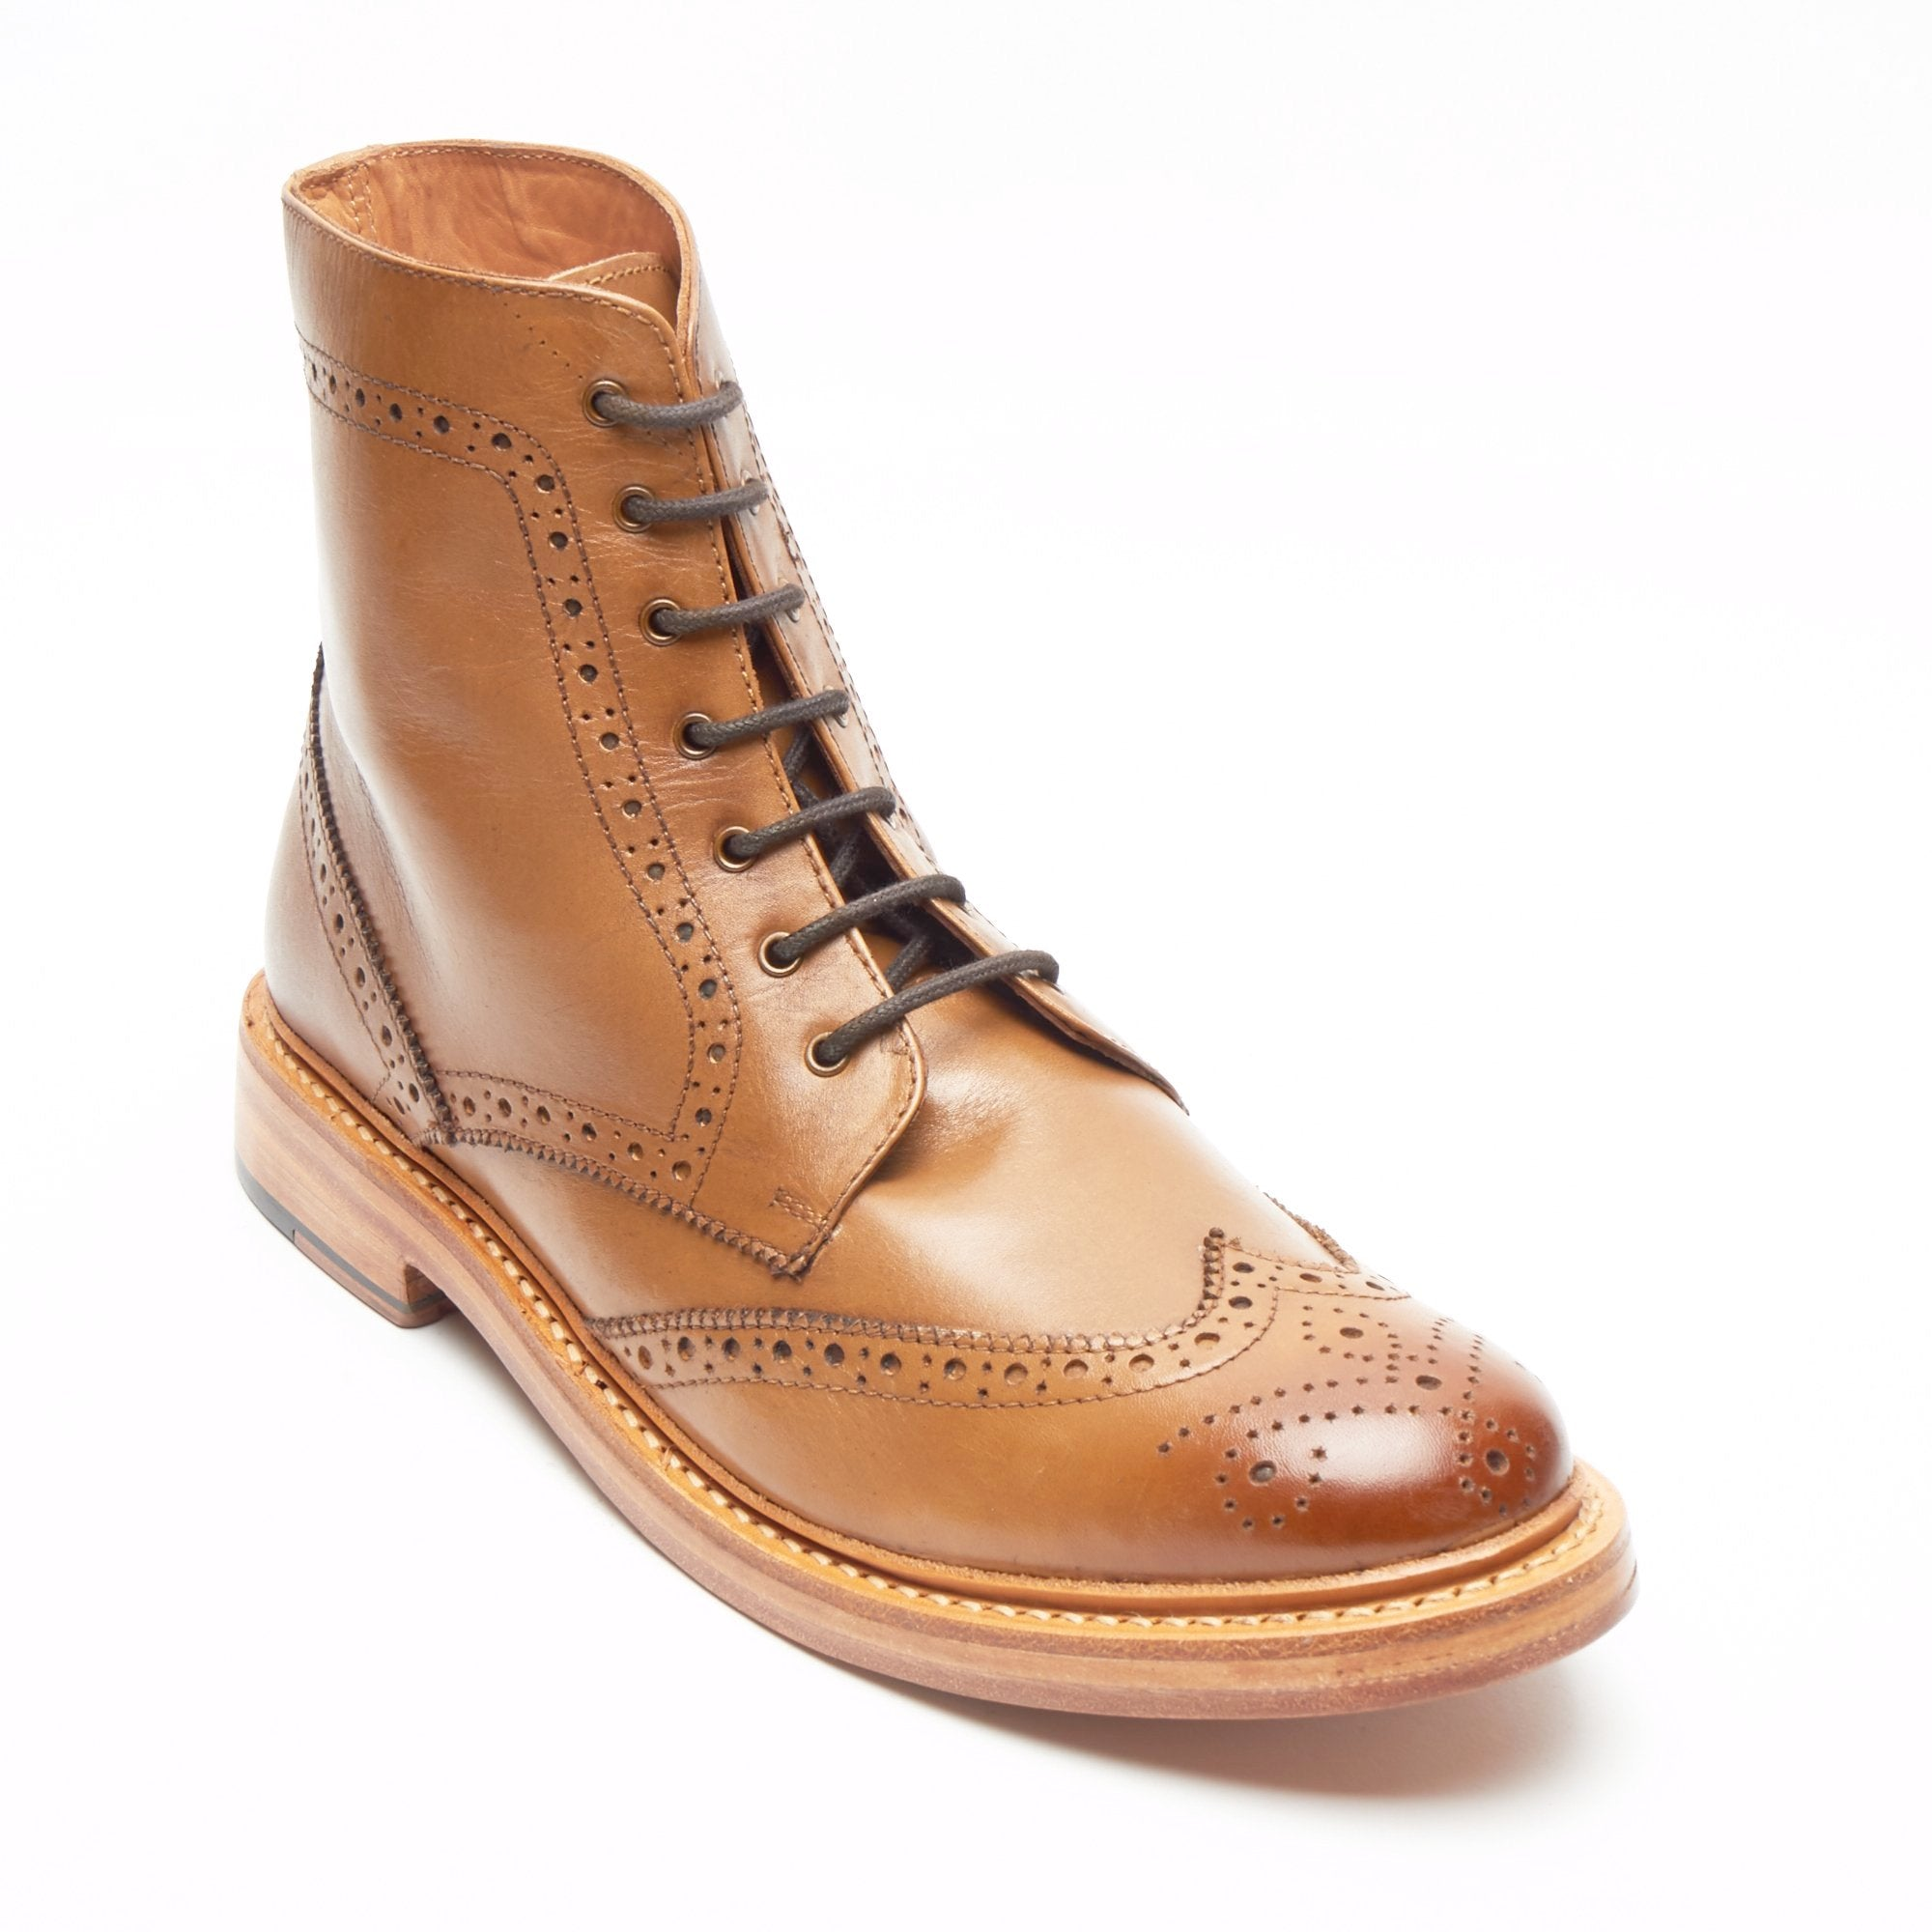 Mens Leather Goodyear Welted Lace Up Boots - 17939 Tan